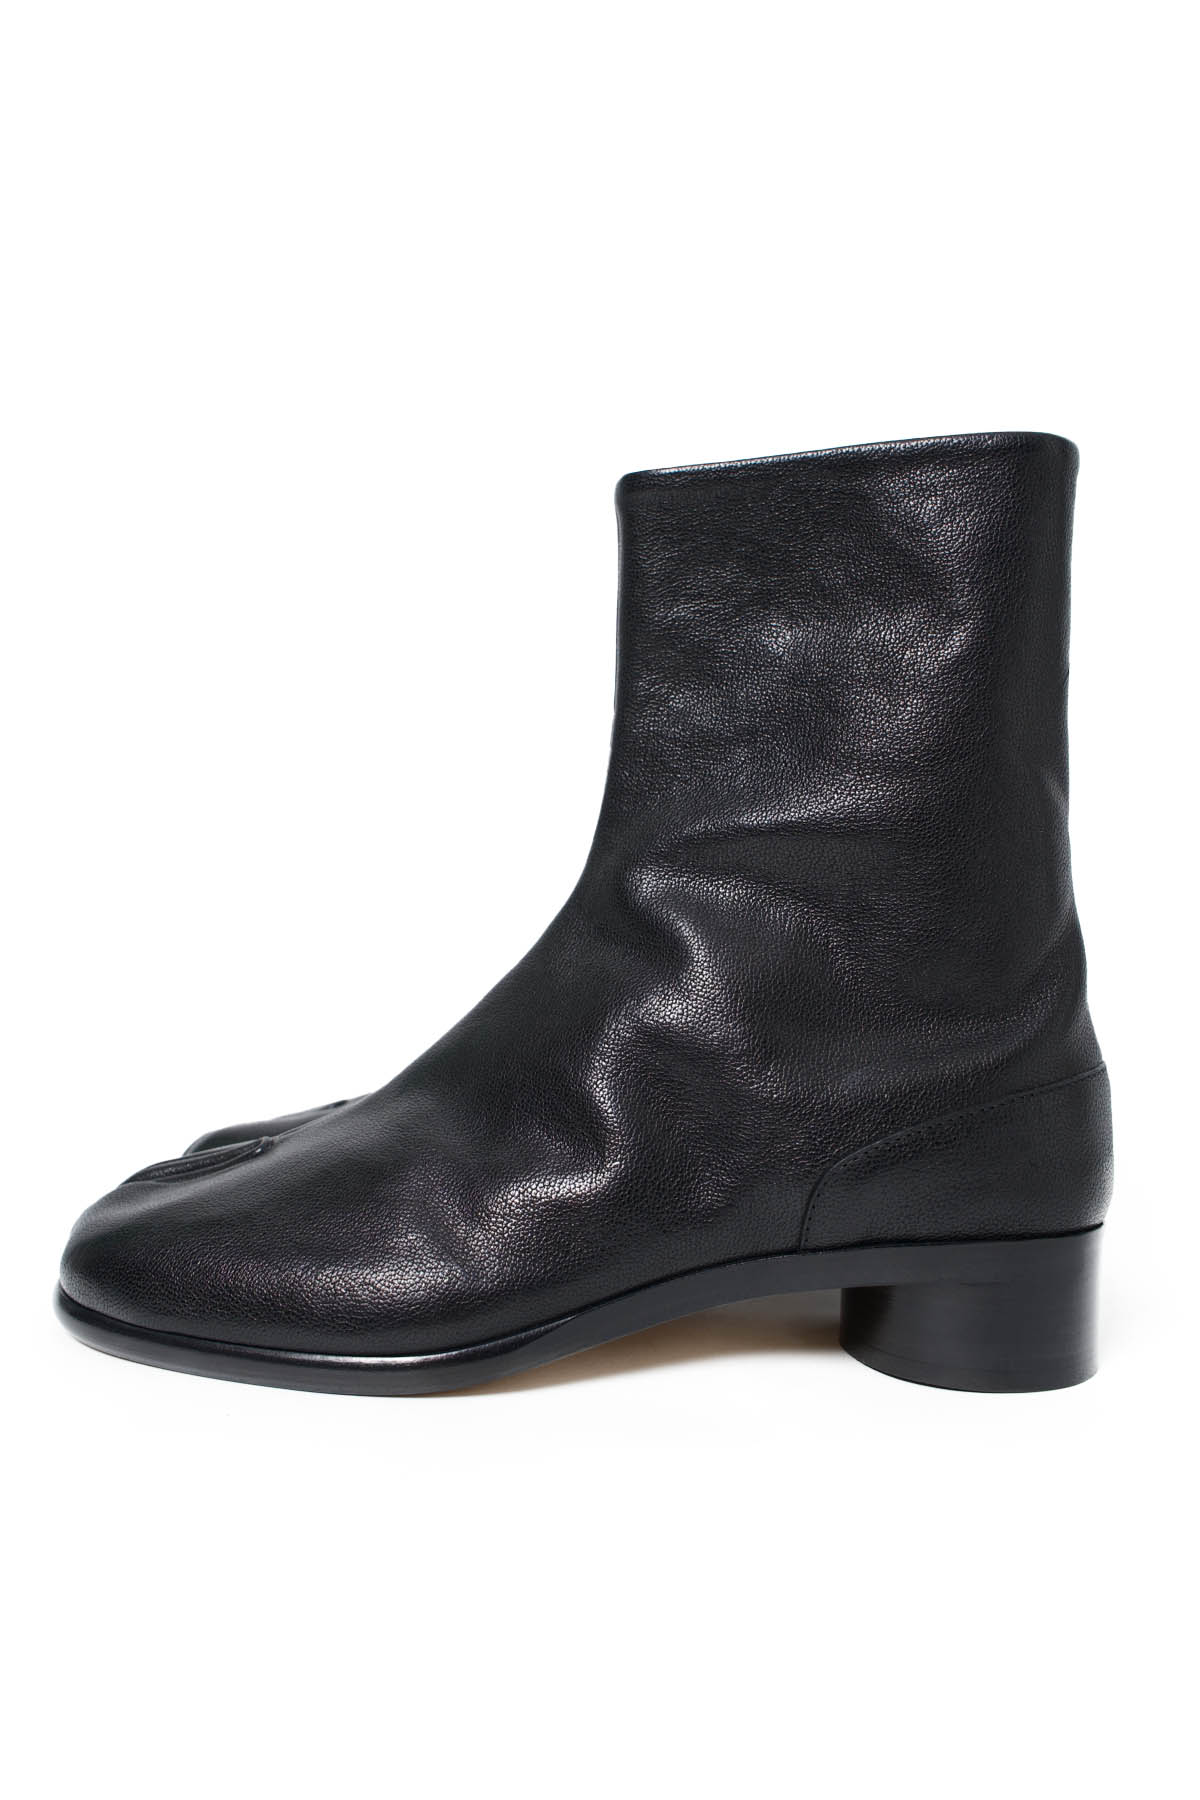 Tabi Boots 30mm Camel Leather [2021SS]